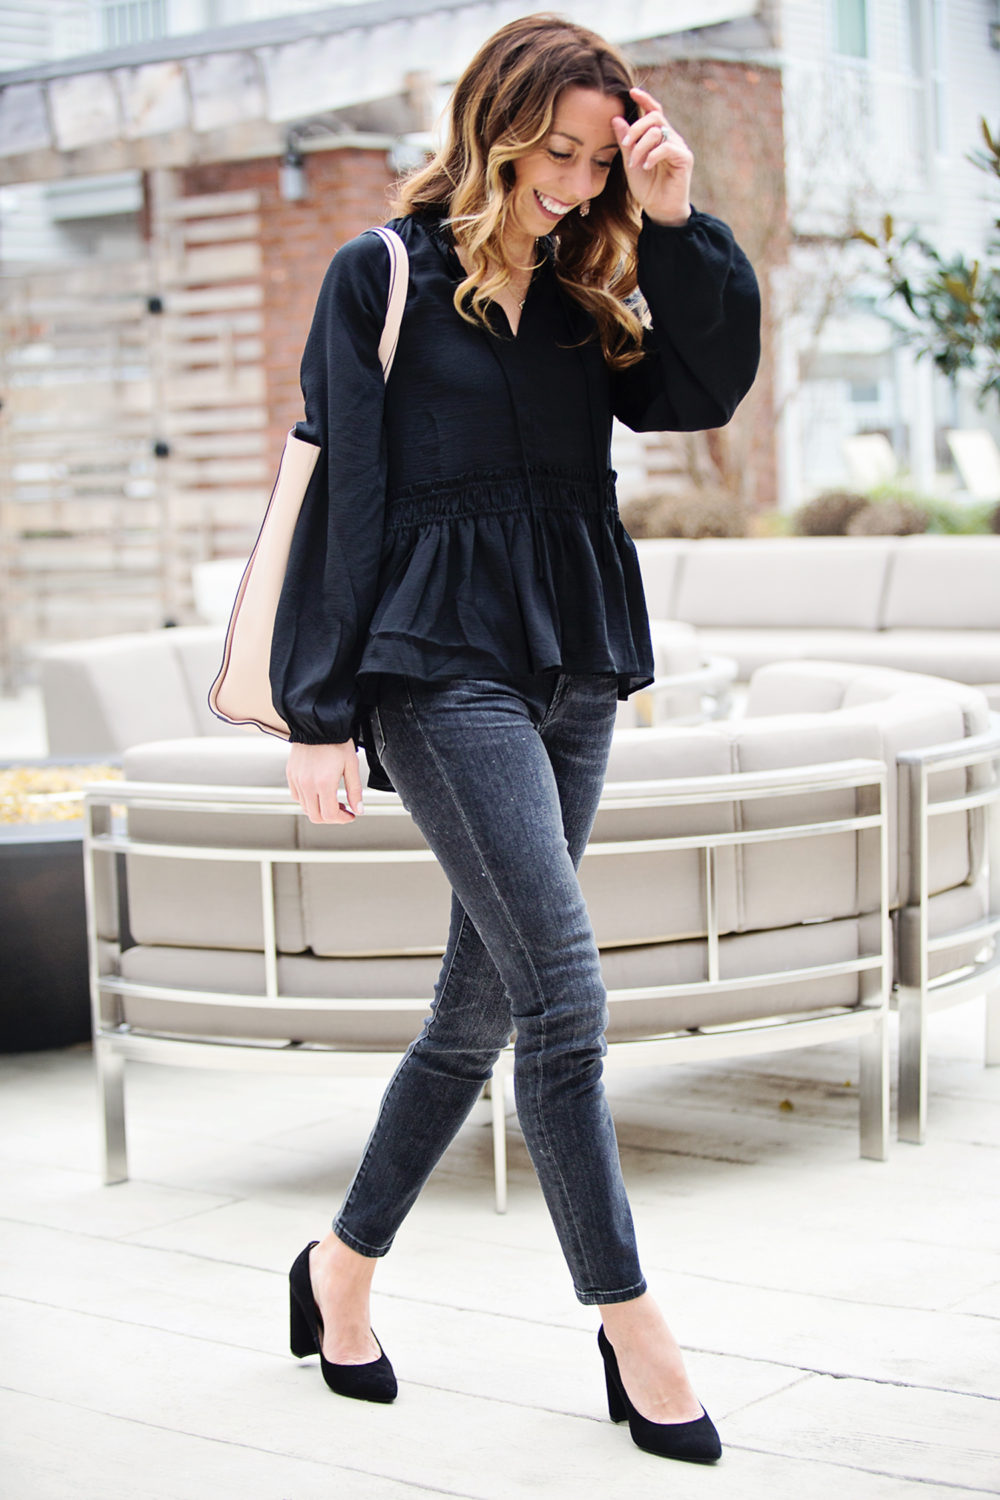 The Motherchic wearing black smocked loft top